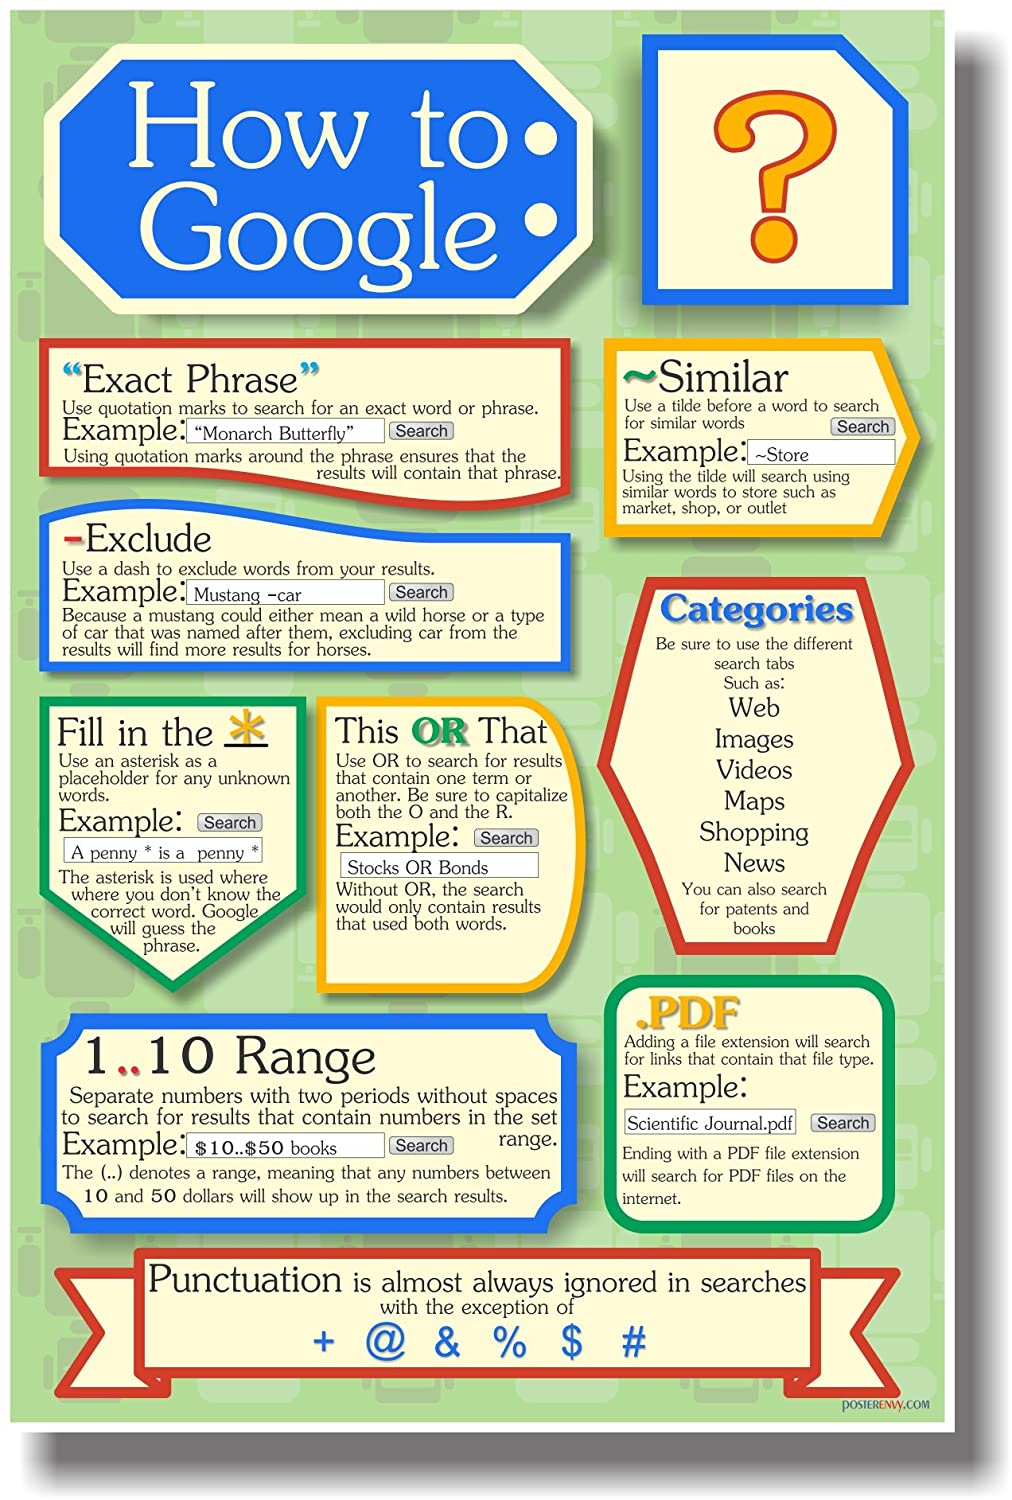 posters for office. Amazon.com: How To Google 2 - Search Engine New Classroom Computer Internet Technology Poster: Office Products Posters For